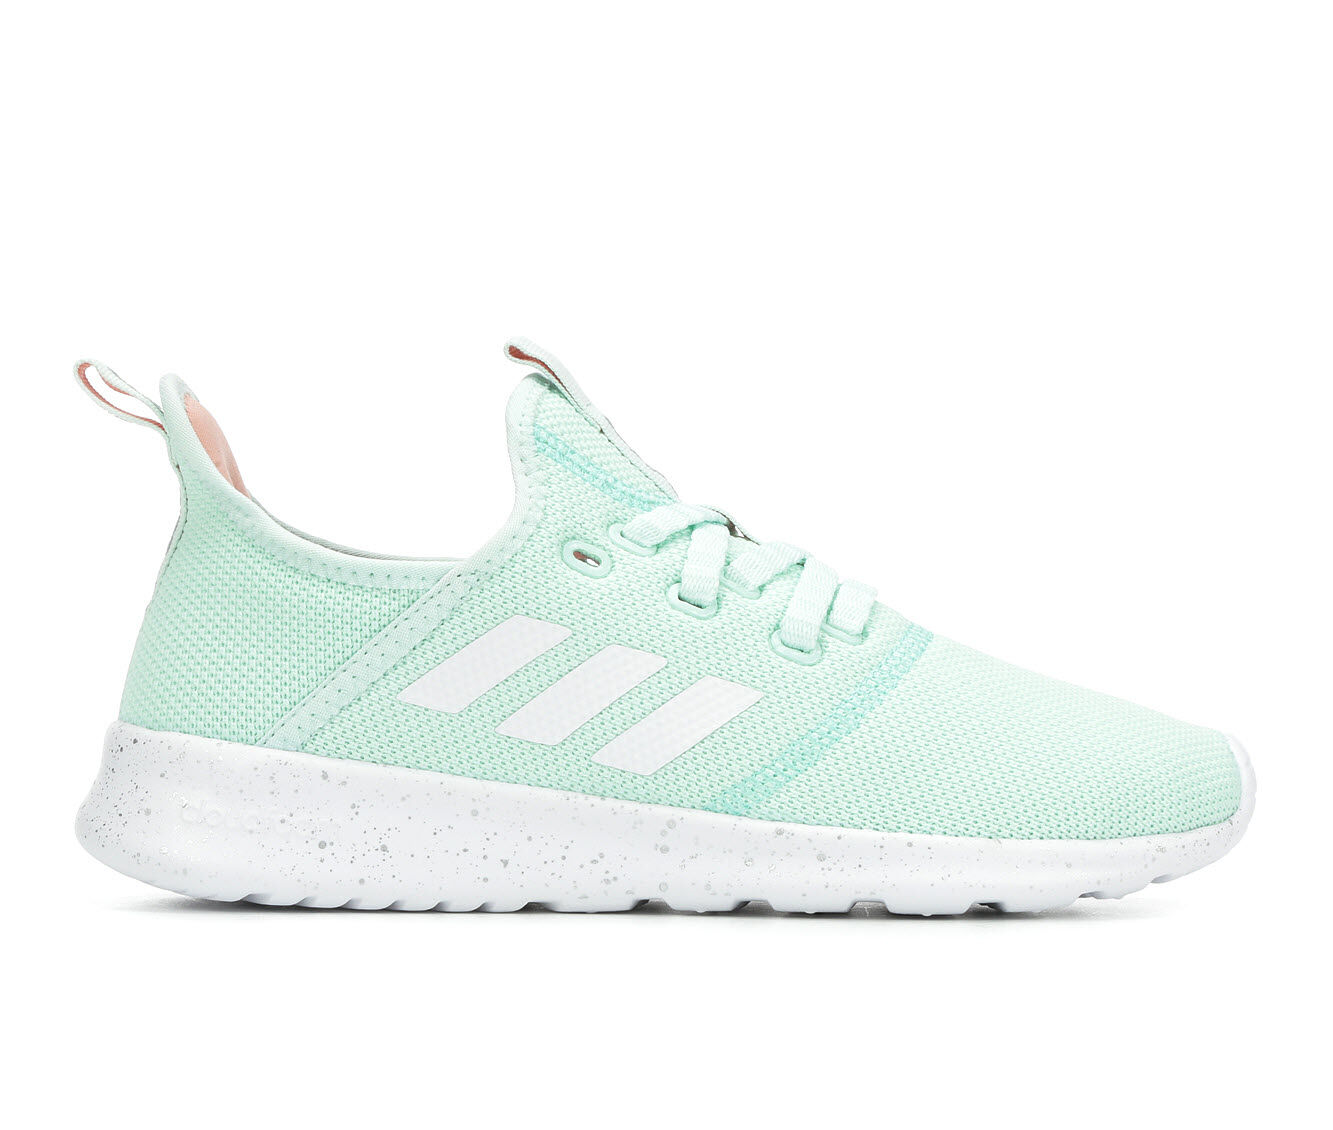 Women Shoes A | Spatu | Adidas, Adidas sneakers, Sneakers